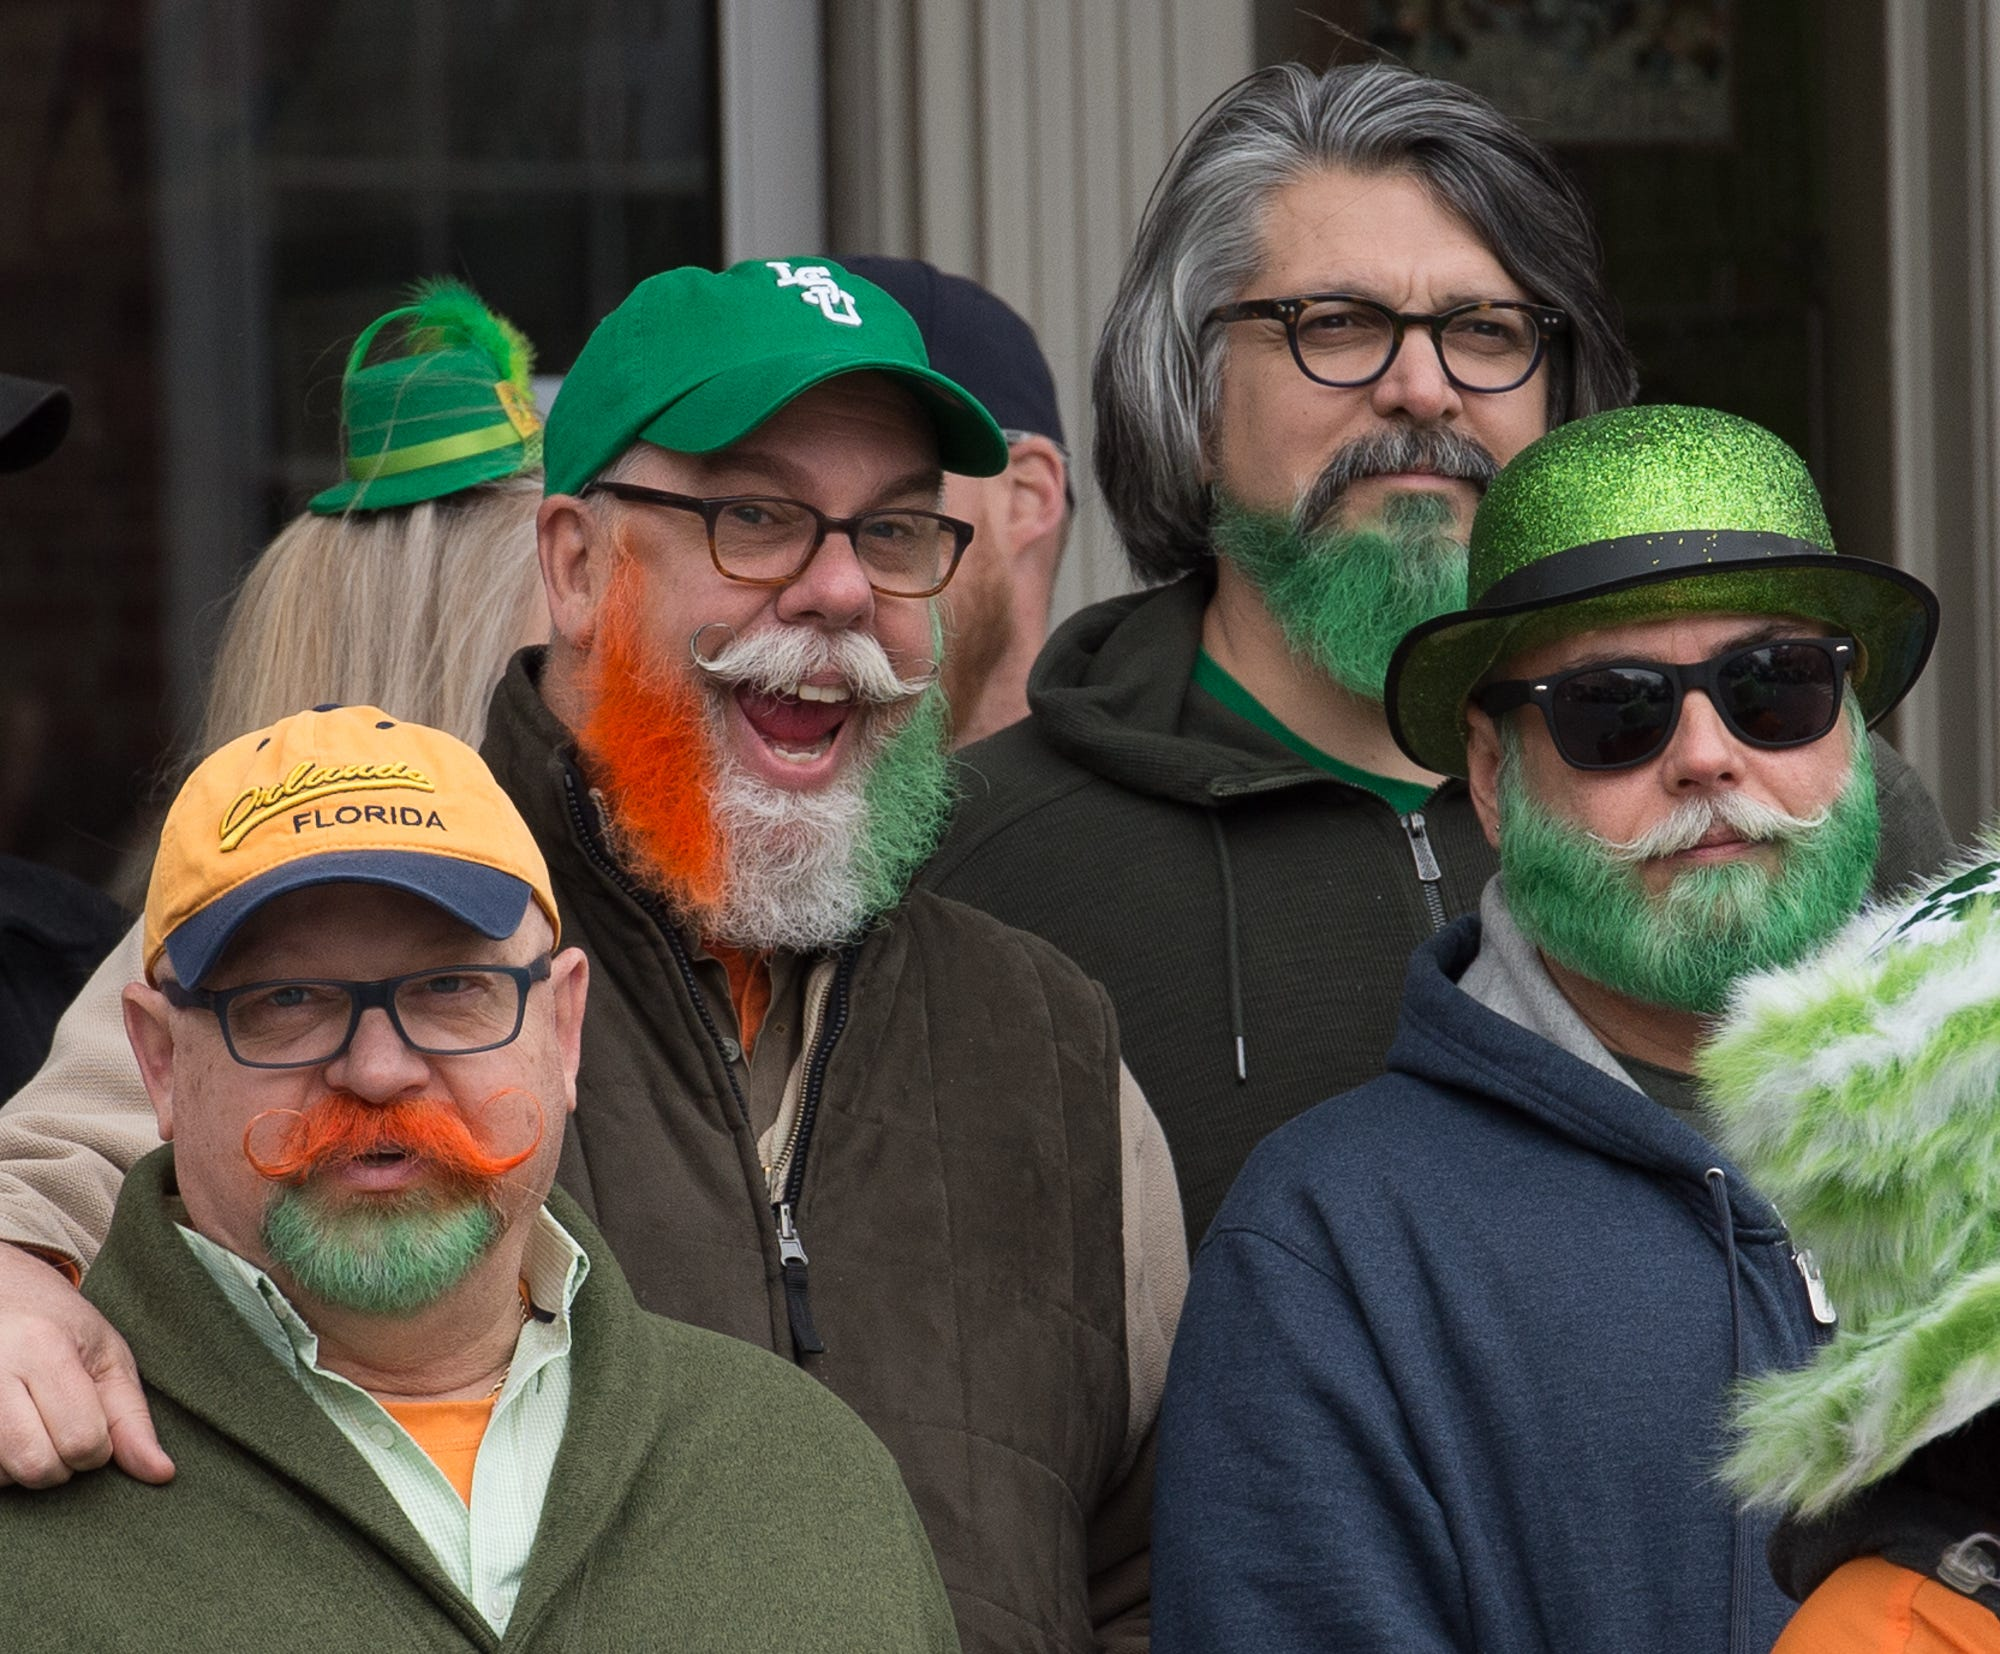 Wilmington St. Patrick's Day parade kicks off weekend of shenanigans